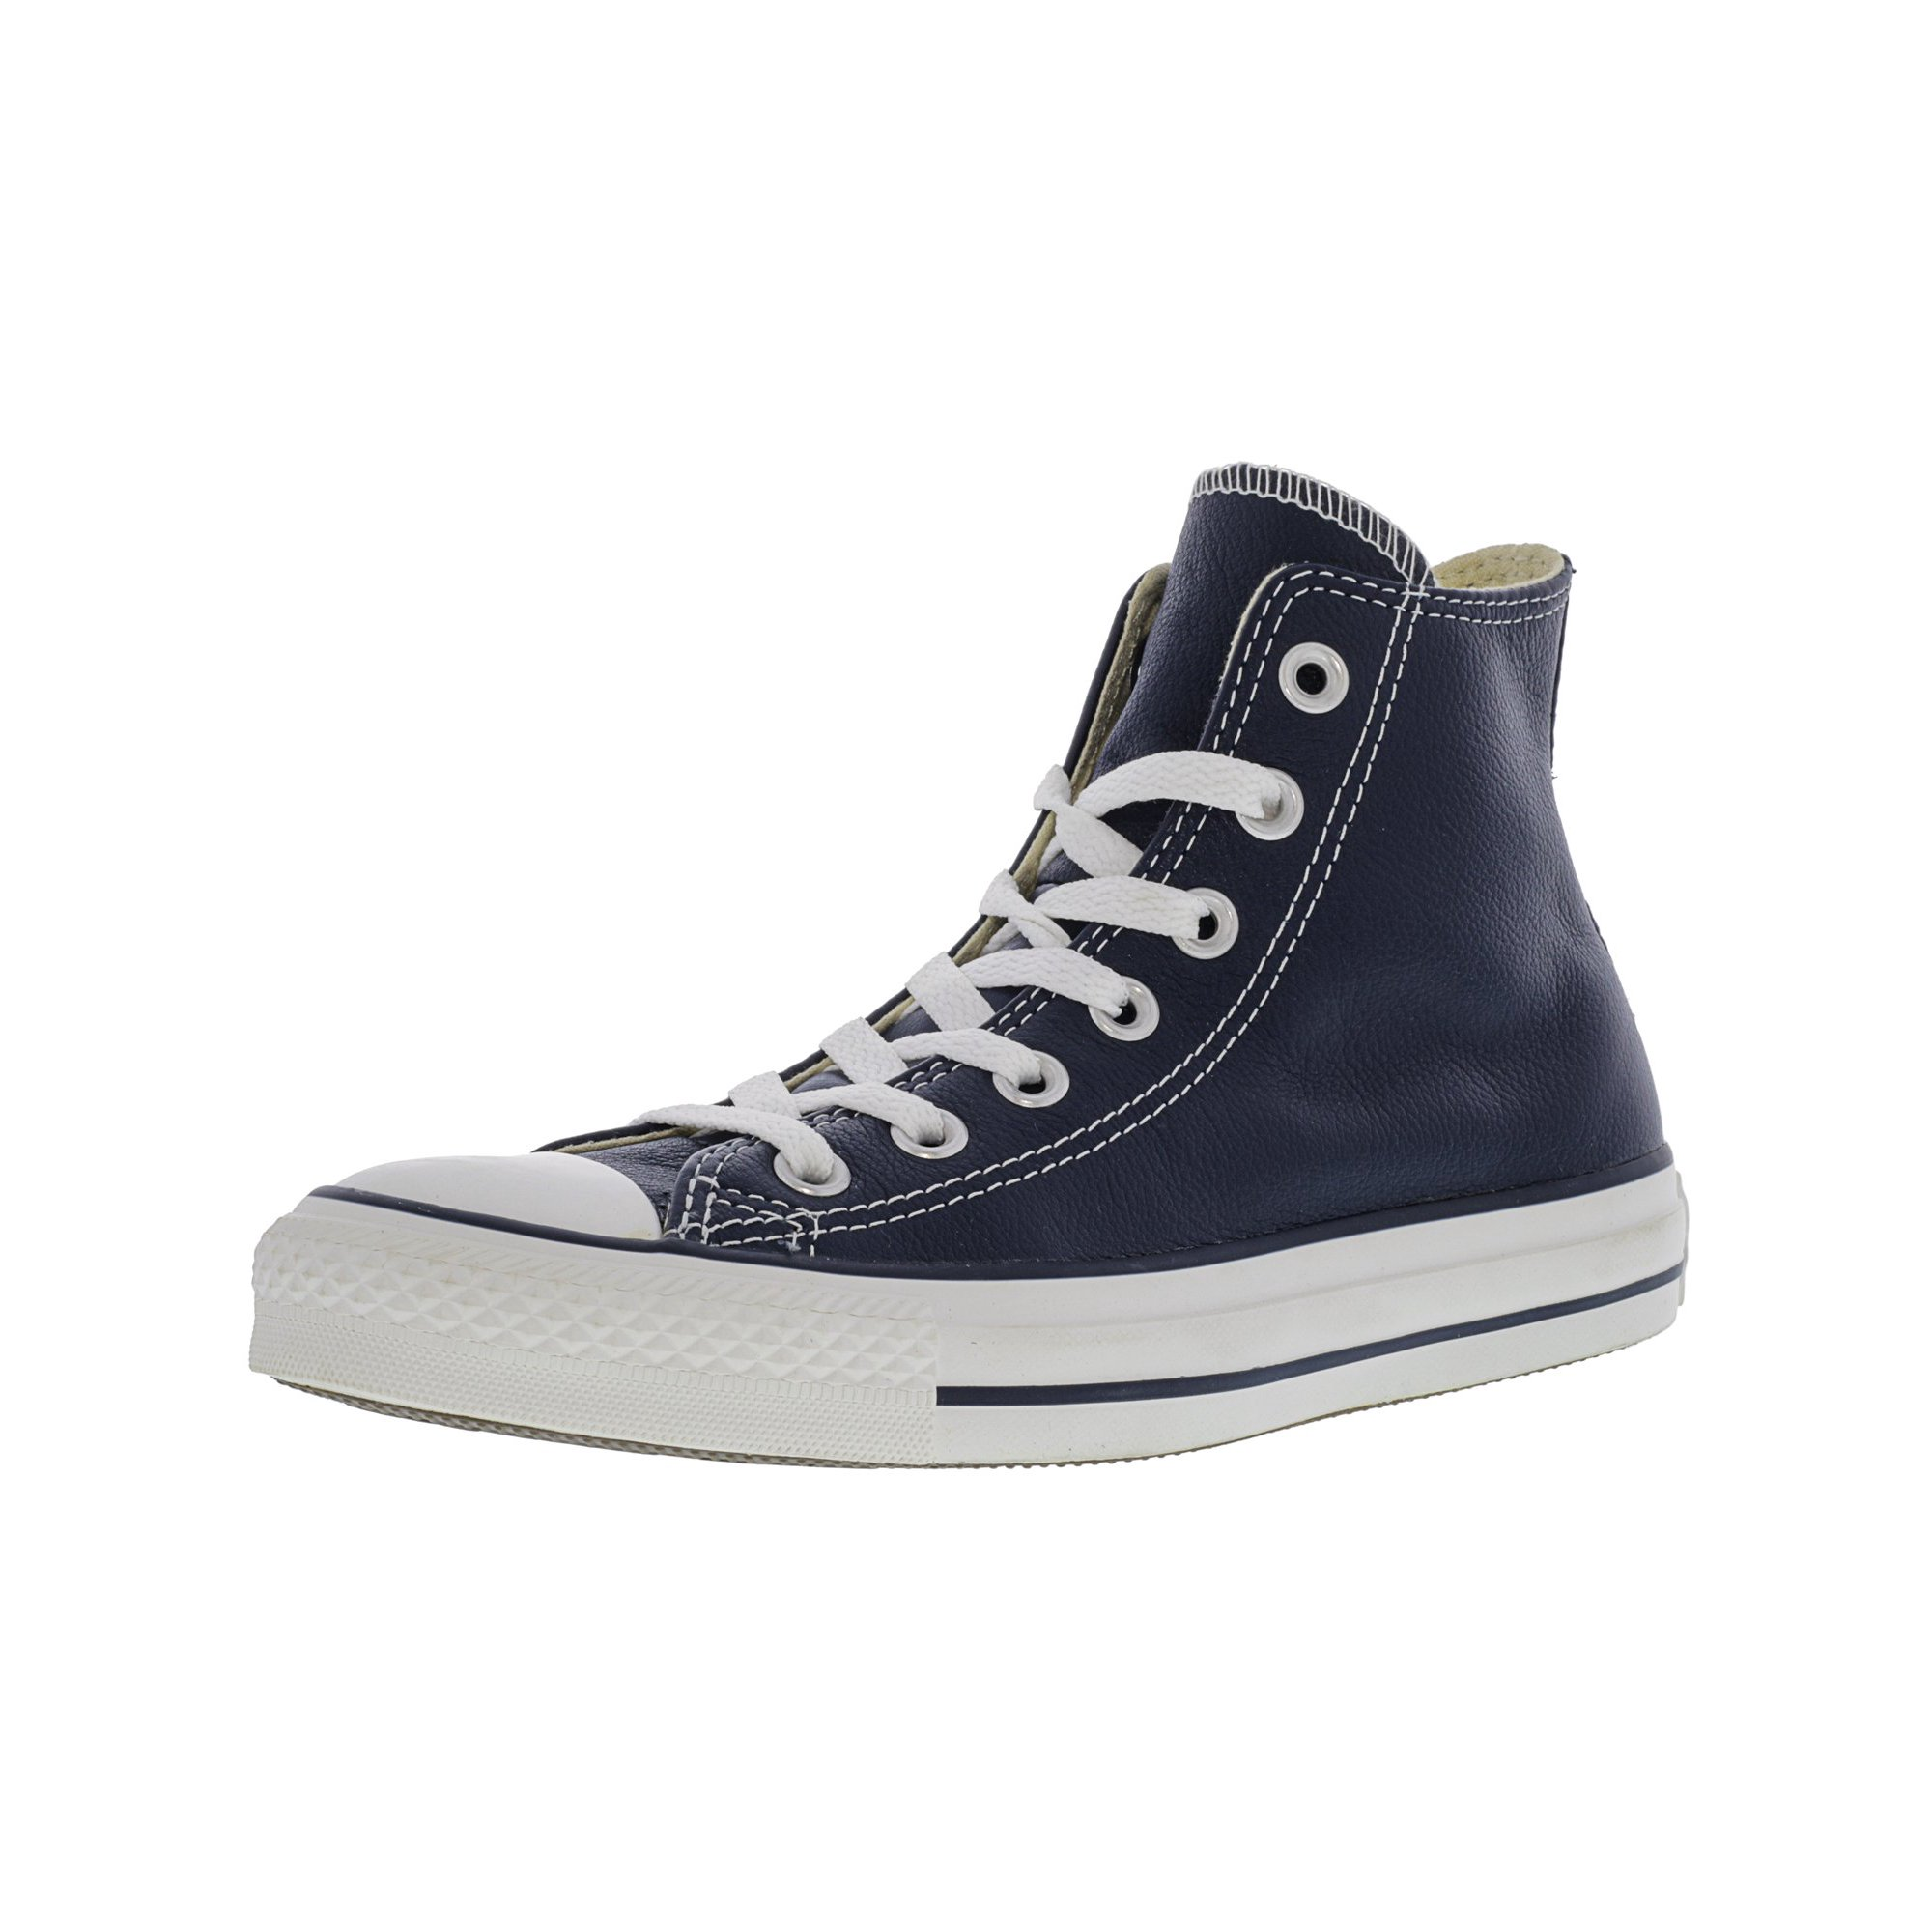 85ad3b97574c Converse Chuck Taylor All Star Hi Red High-Top Leather Fashion Sneaker - 6M    4M